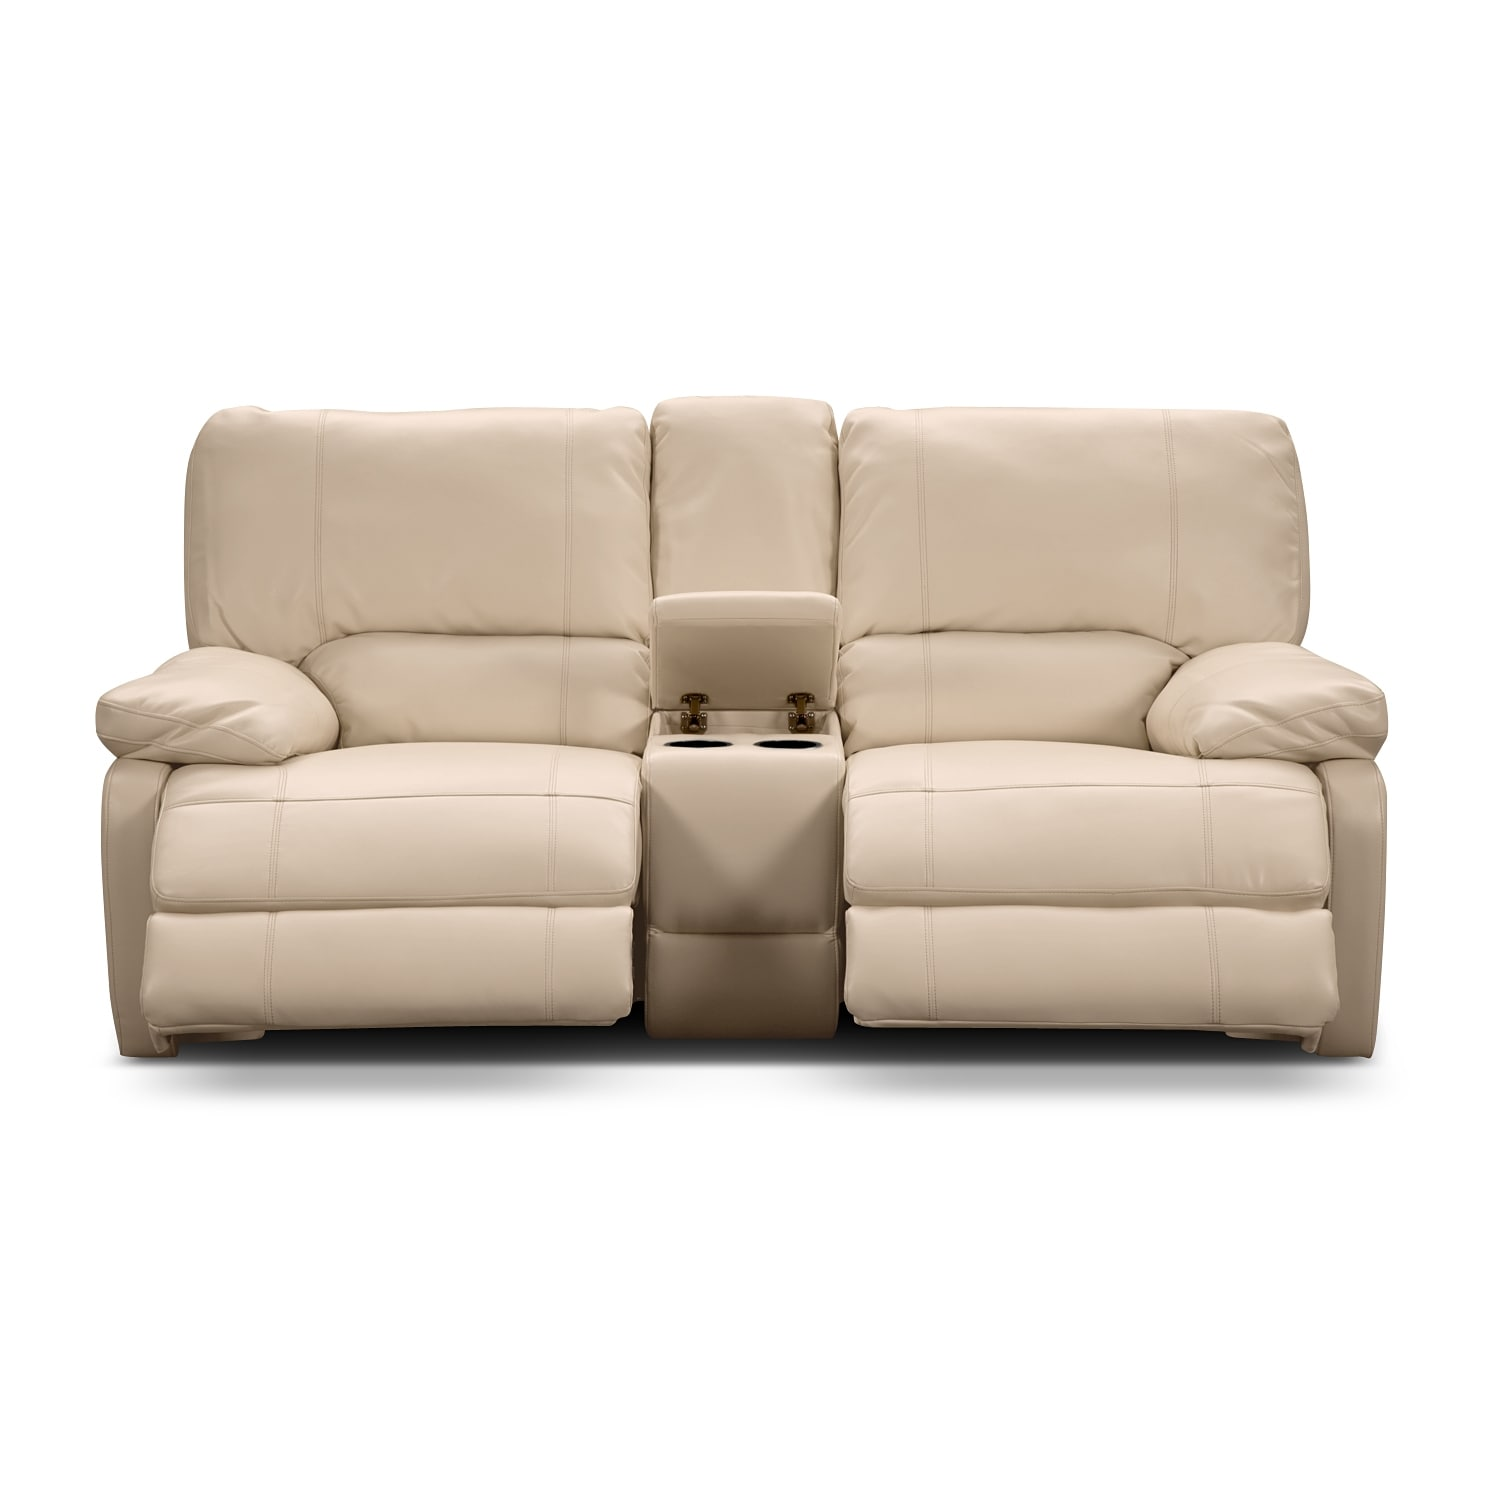 Coronado leather power reclining loveseat value city Reclining leather sofa and loveseat